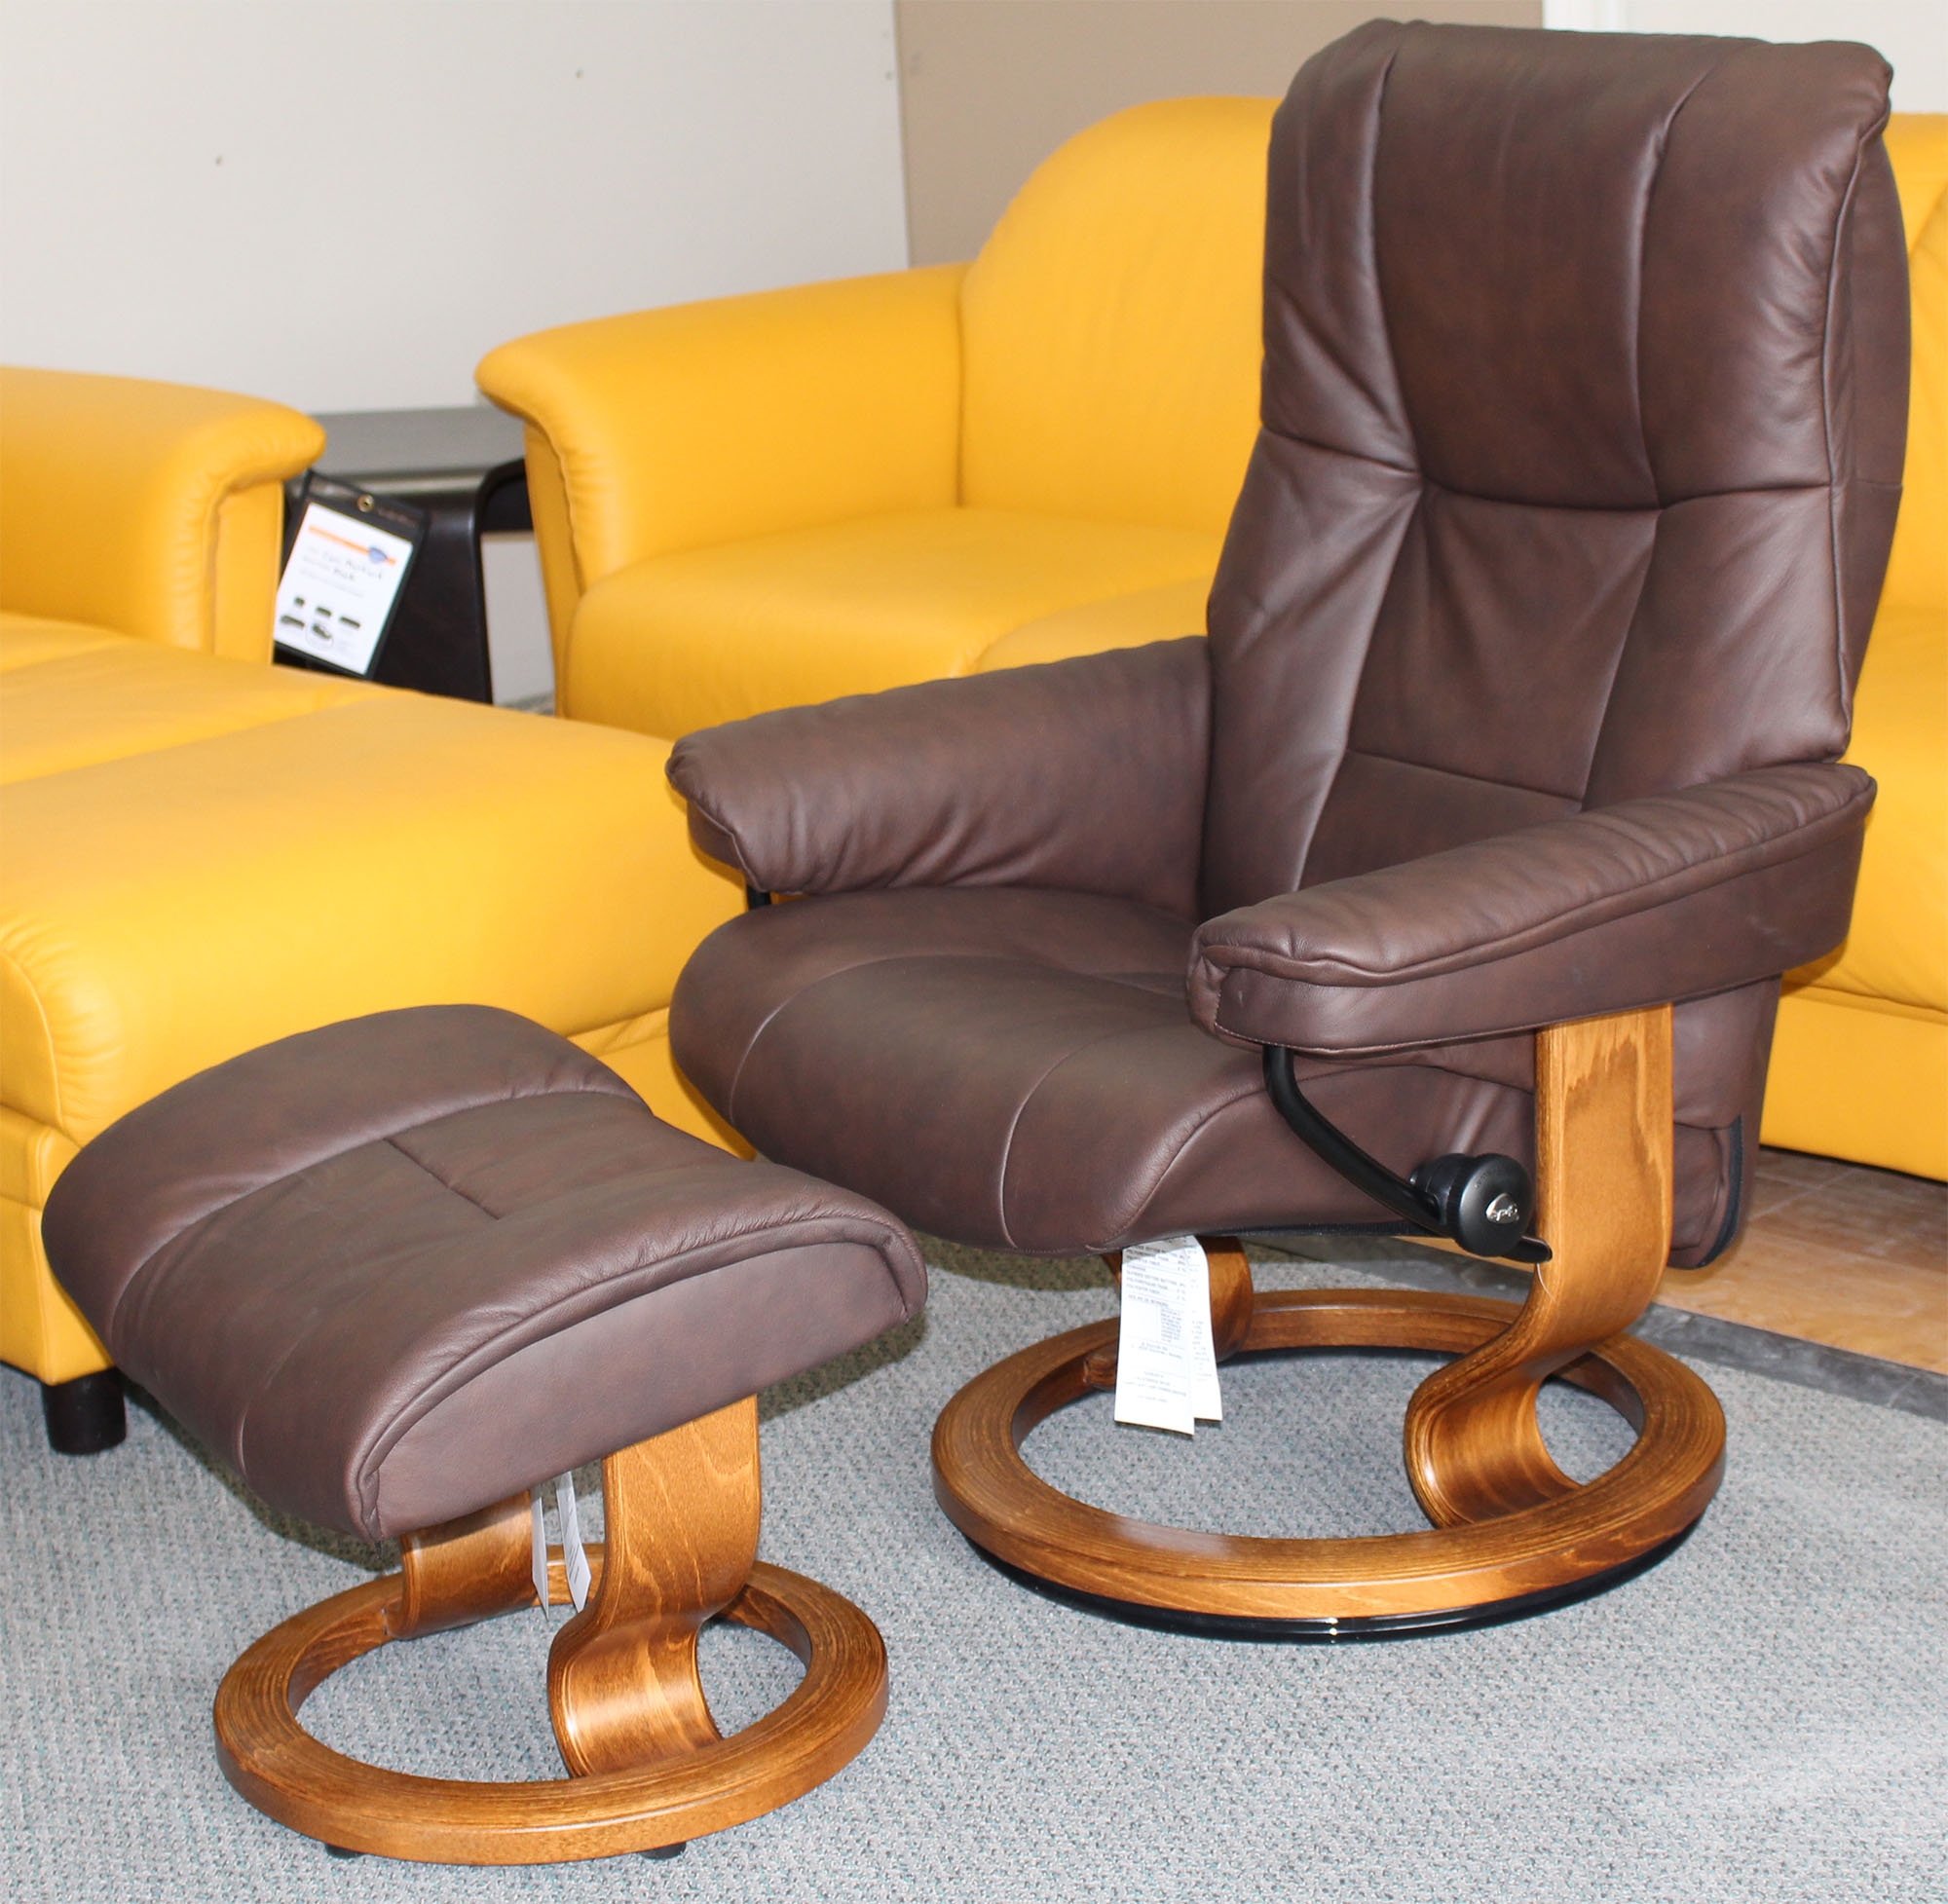 Stressless Paloma Stressless Chelsea Small Mayfair Paloma Chocolate Leather Recliner Chair And Ottoman By Ekornes